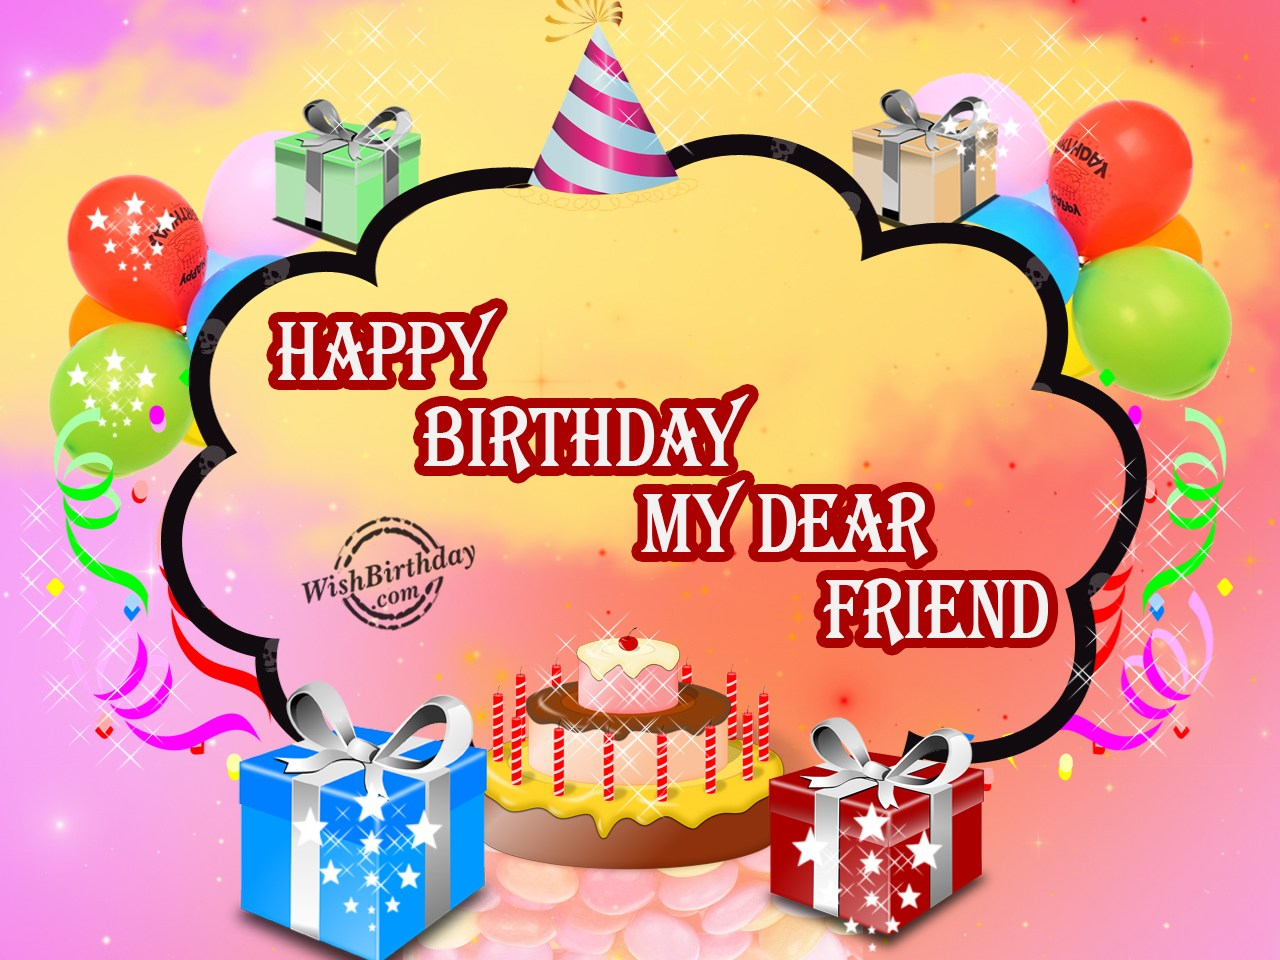 birthday images for friend download ; Wishing-happy-Birthday-To-My-Sweet-Friend